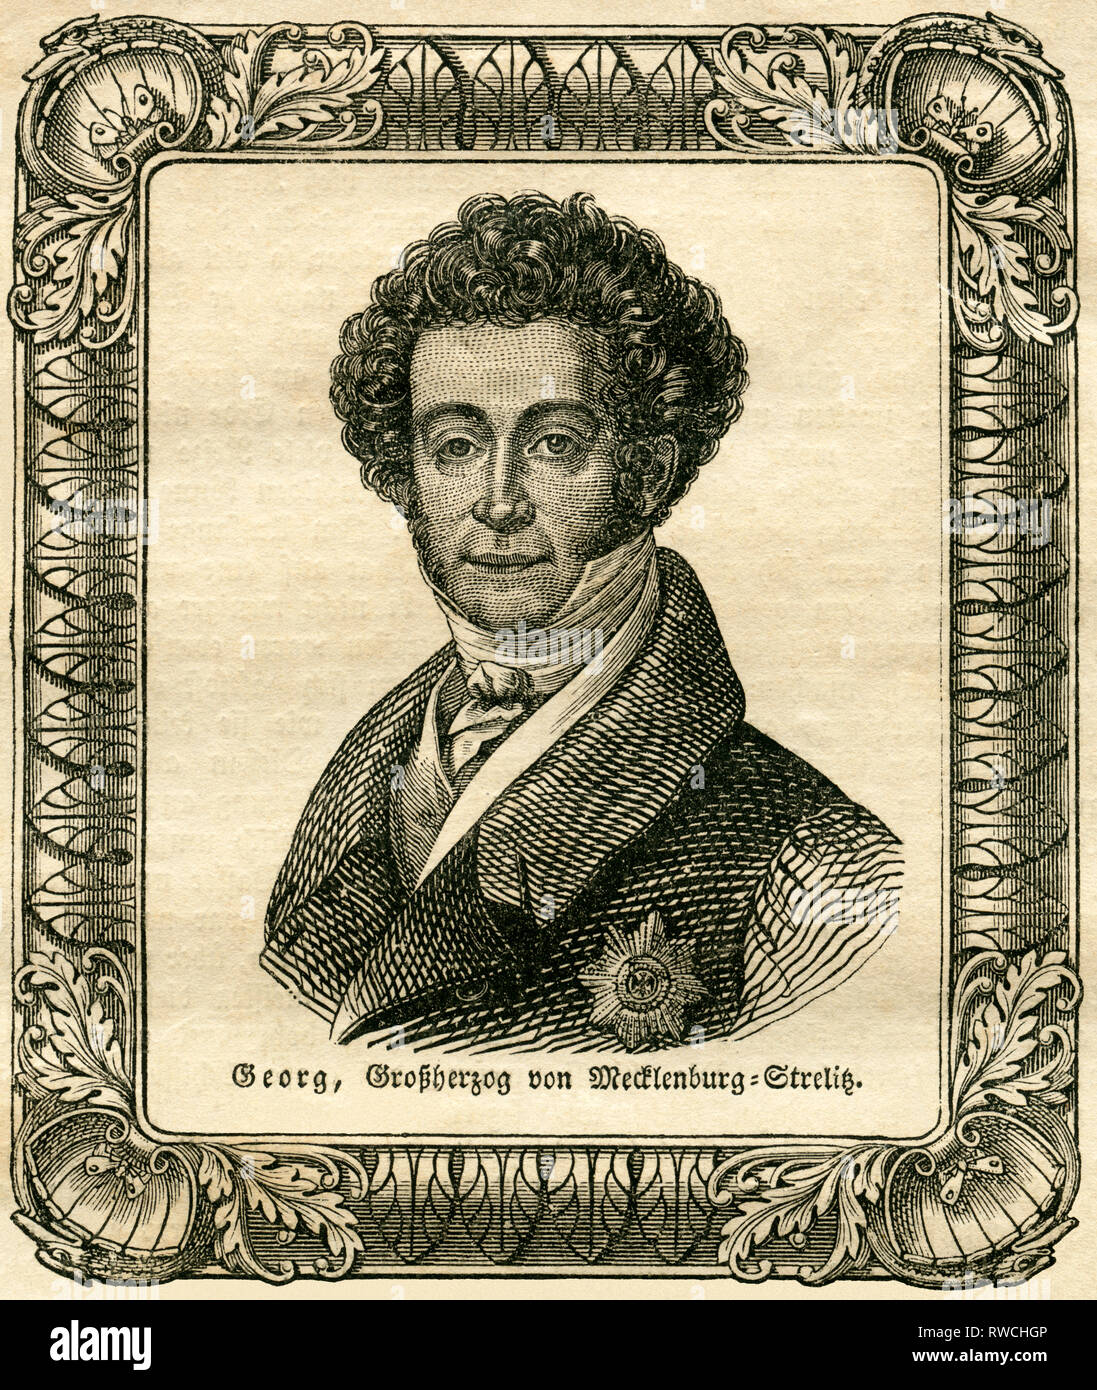 George, Grand Duke of Mecklenburg-Strelitz, illustration from the magazine ' Das Pfennig-Magazin', No. 223,  published 08.07.1837., Additional-Rights-Clearance-Info-Not-Available - Stock Image